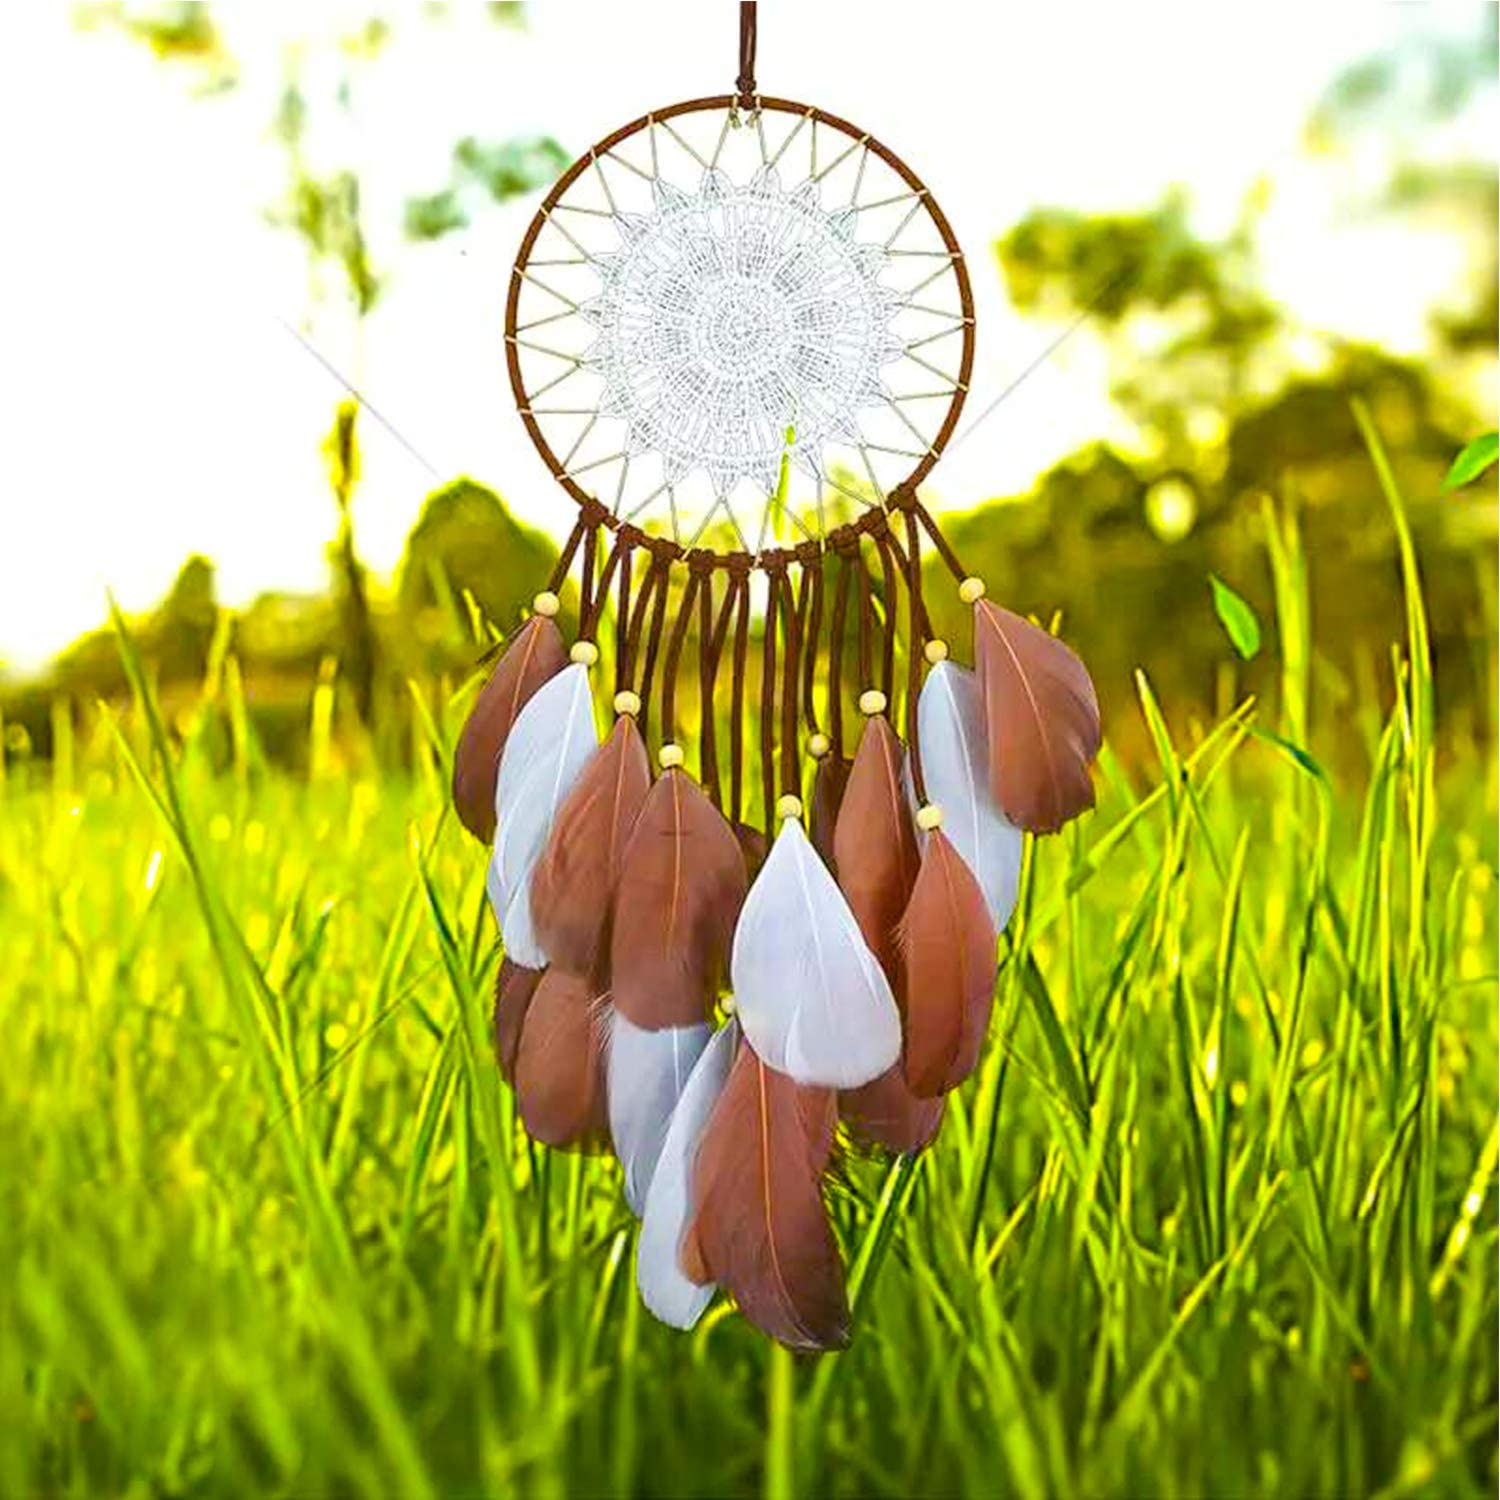 NXGEN Dream Catcher Handmade Traditional Feather Dream Catcher for Wall Hanging Home Decoration Ornament Craft Gift